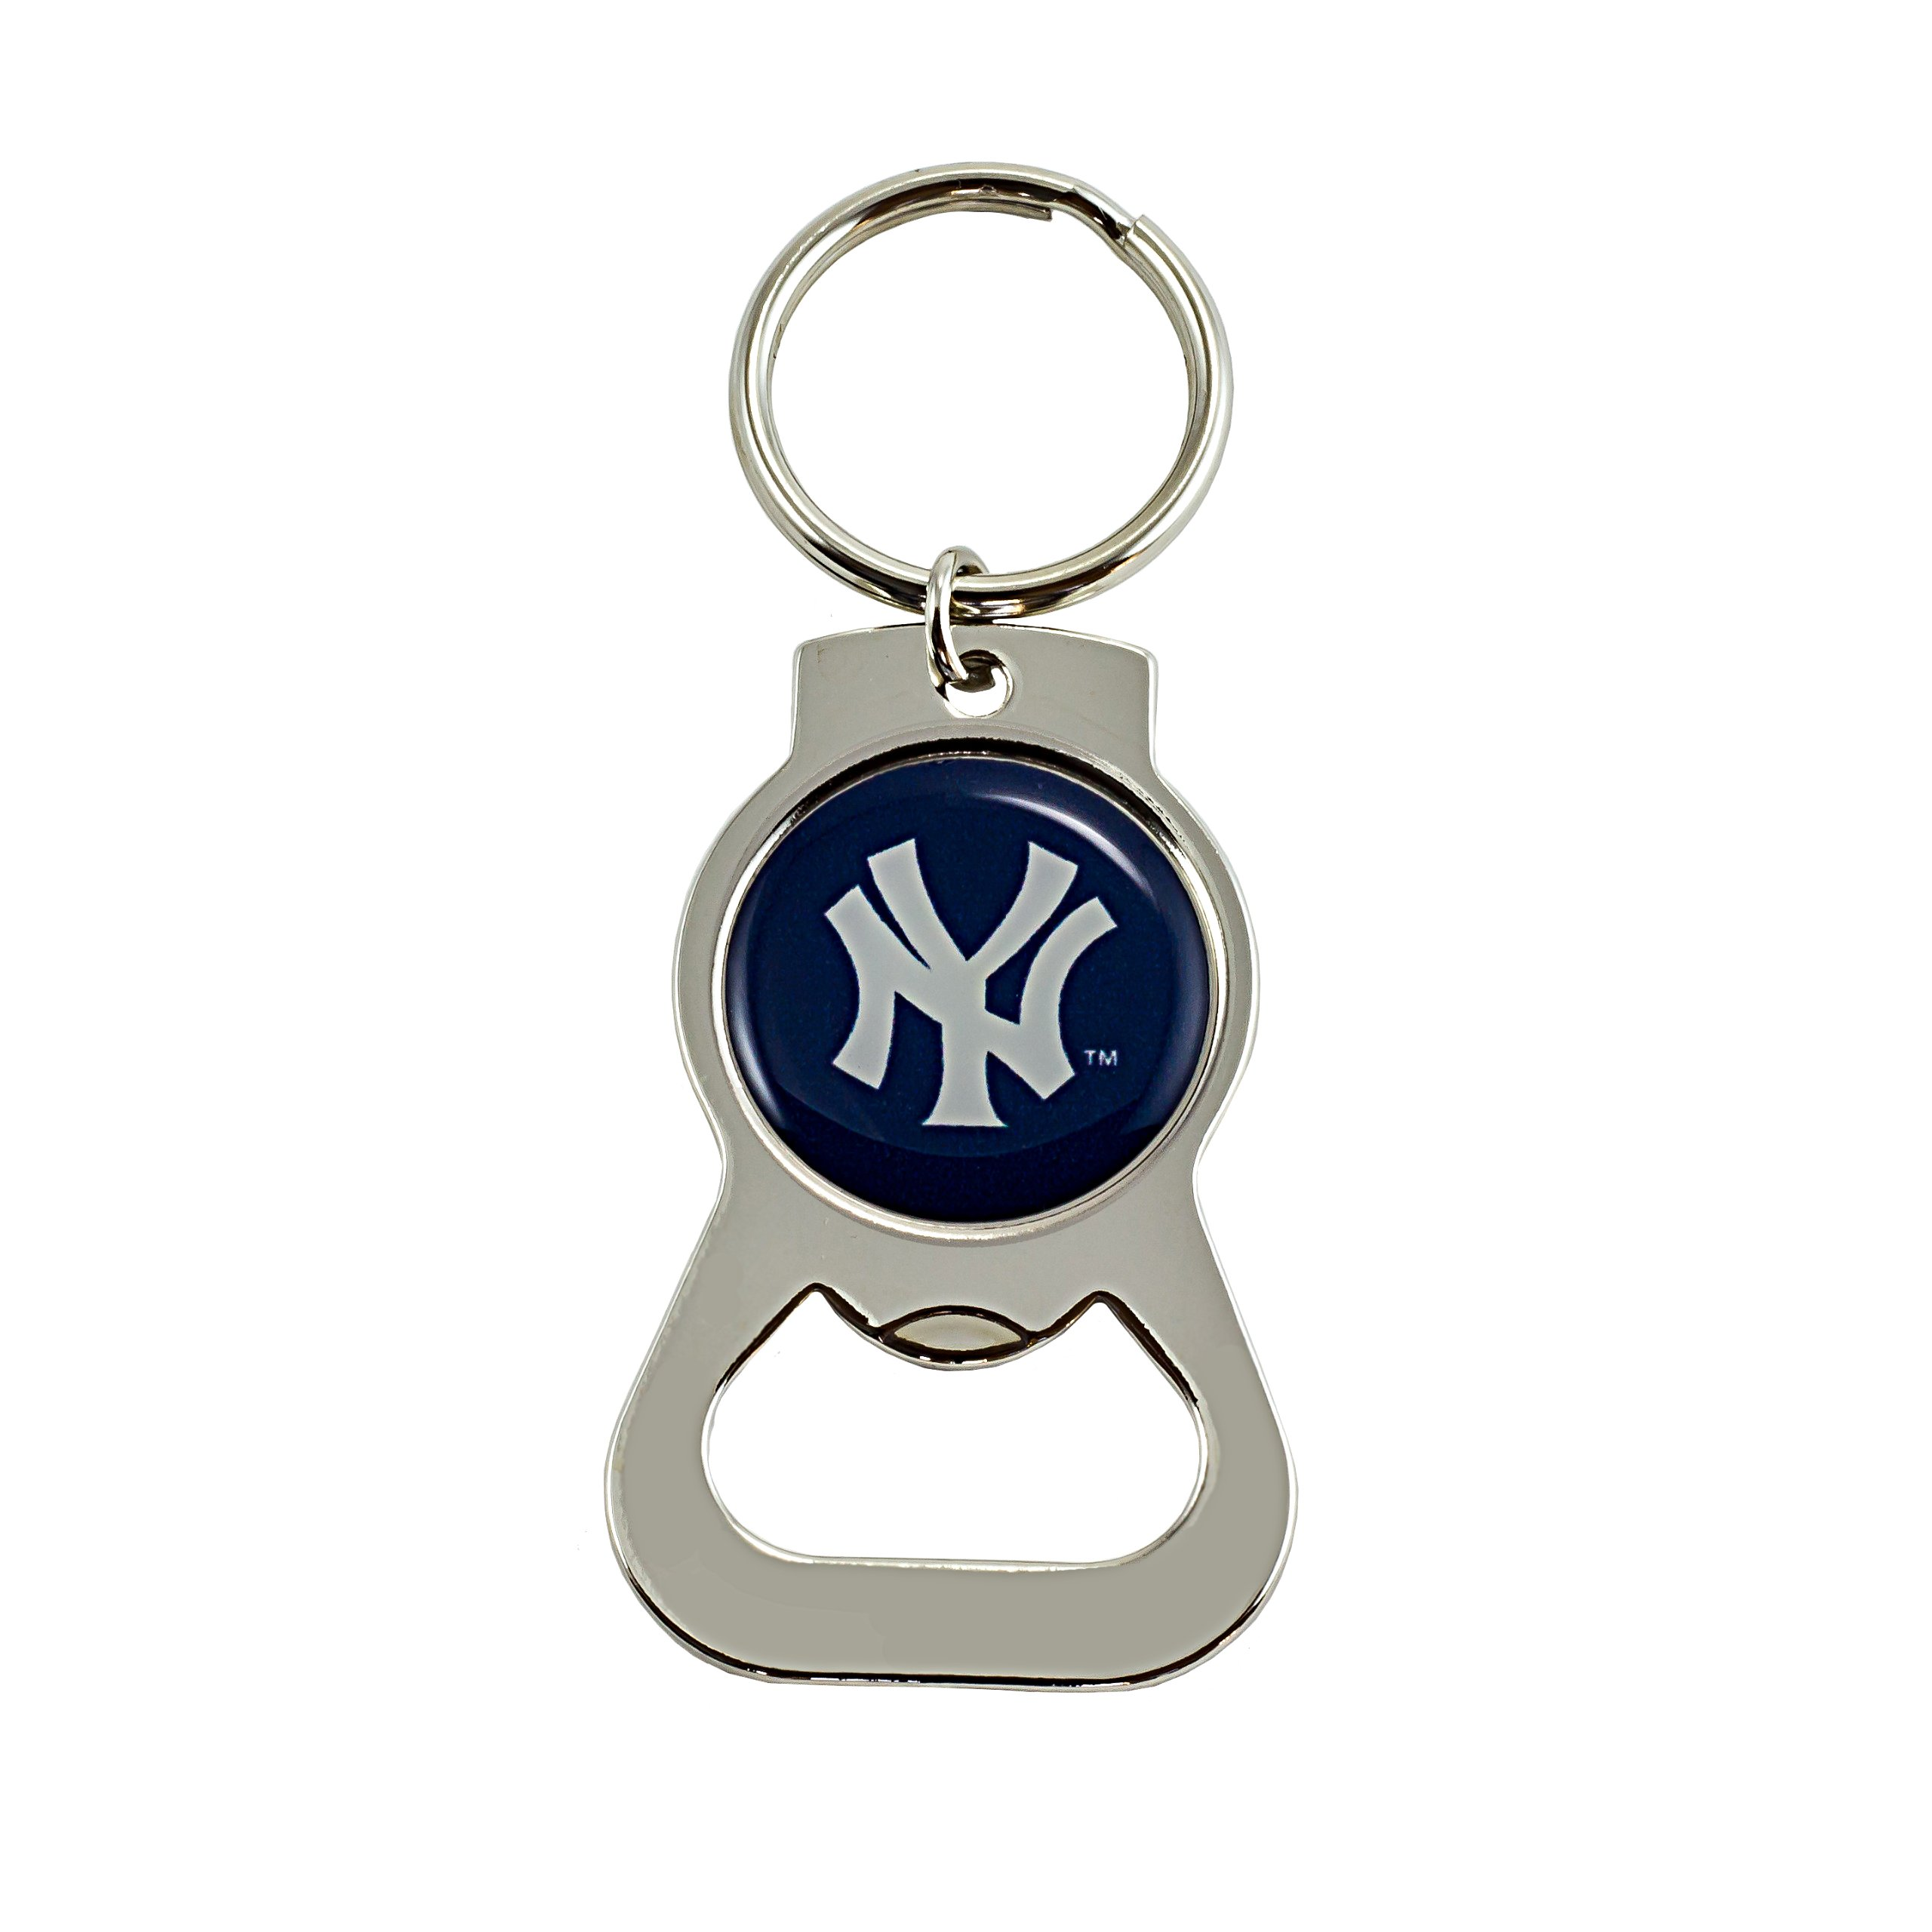 New York Yankees Blue Bottle Opener Keychain (AM)